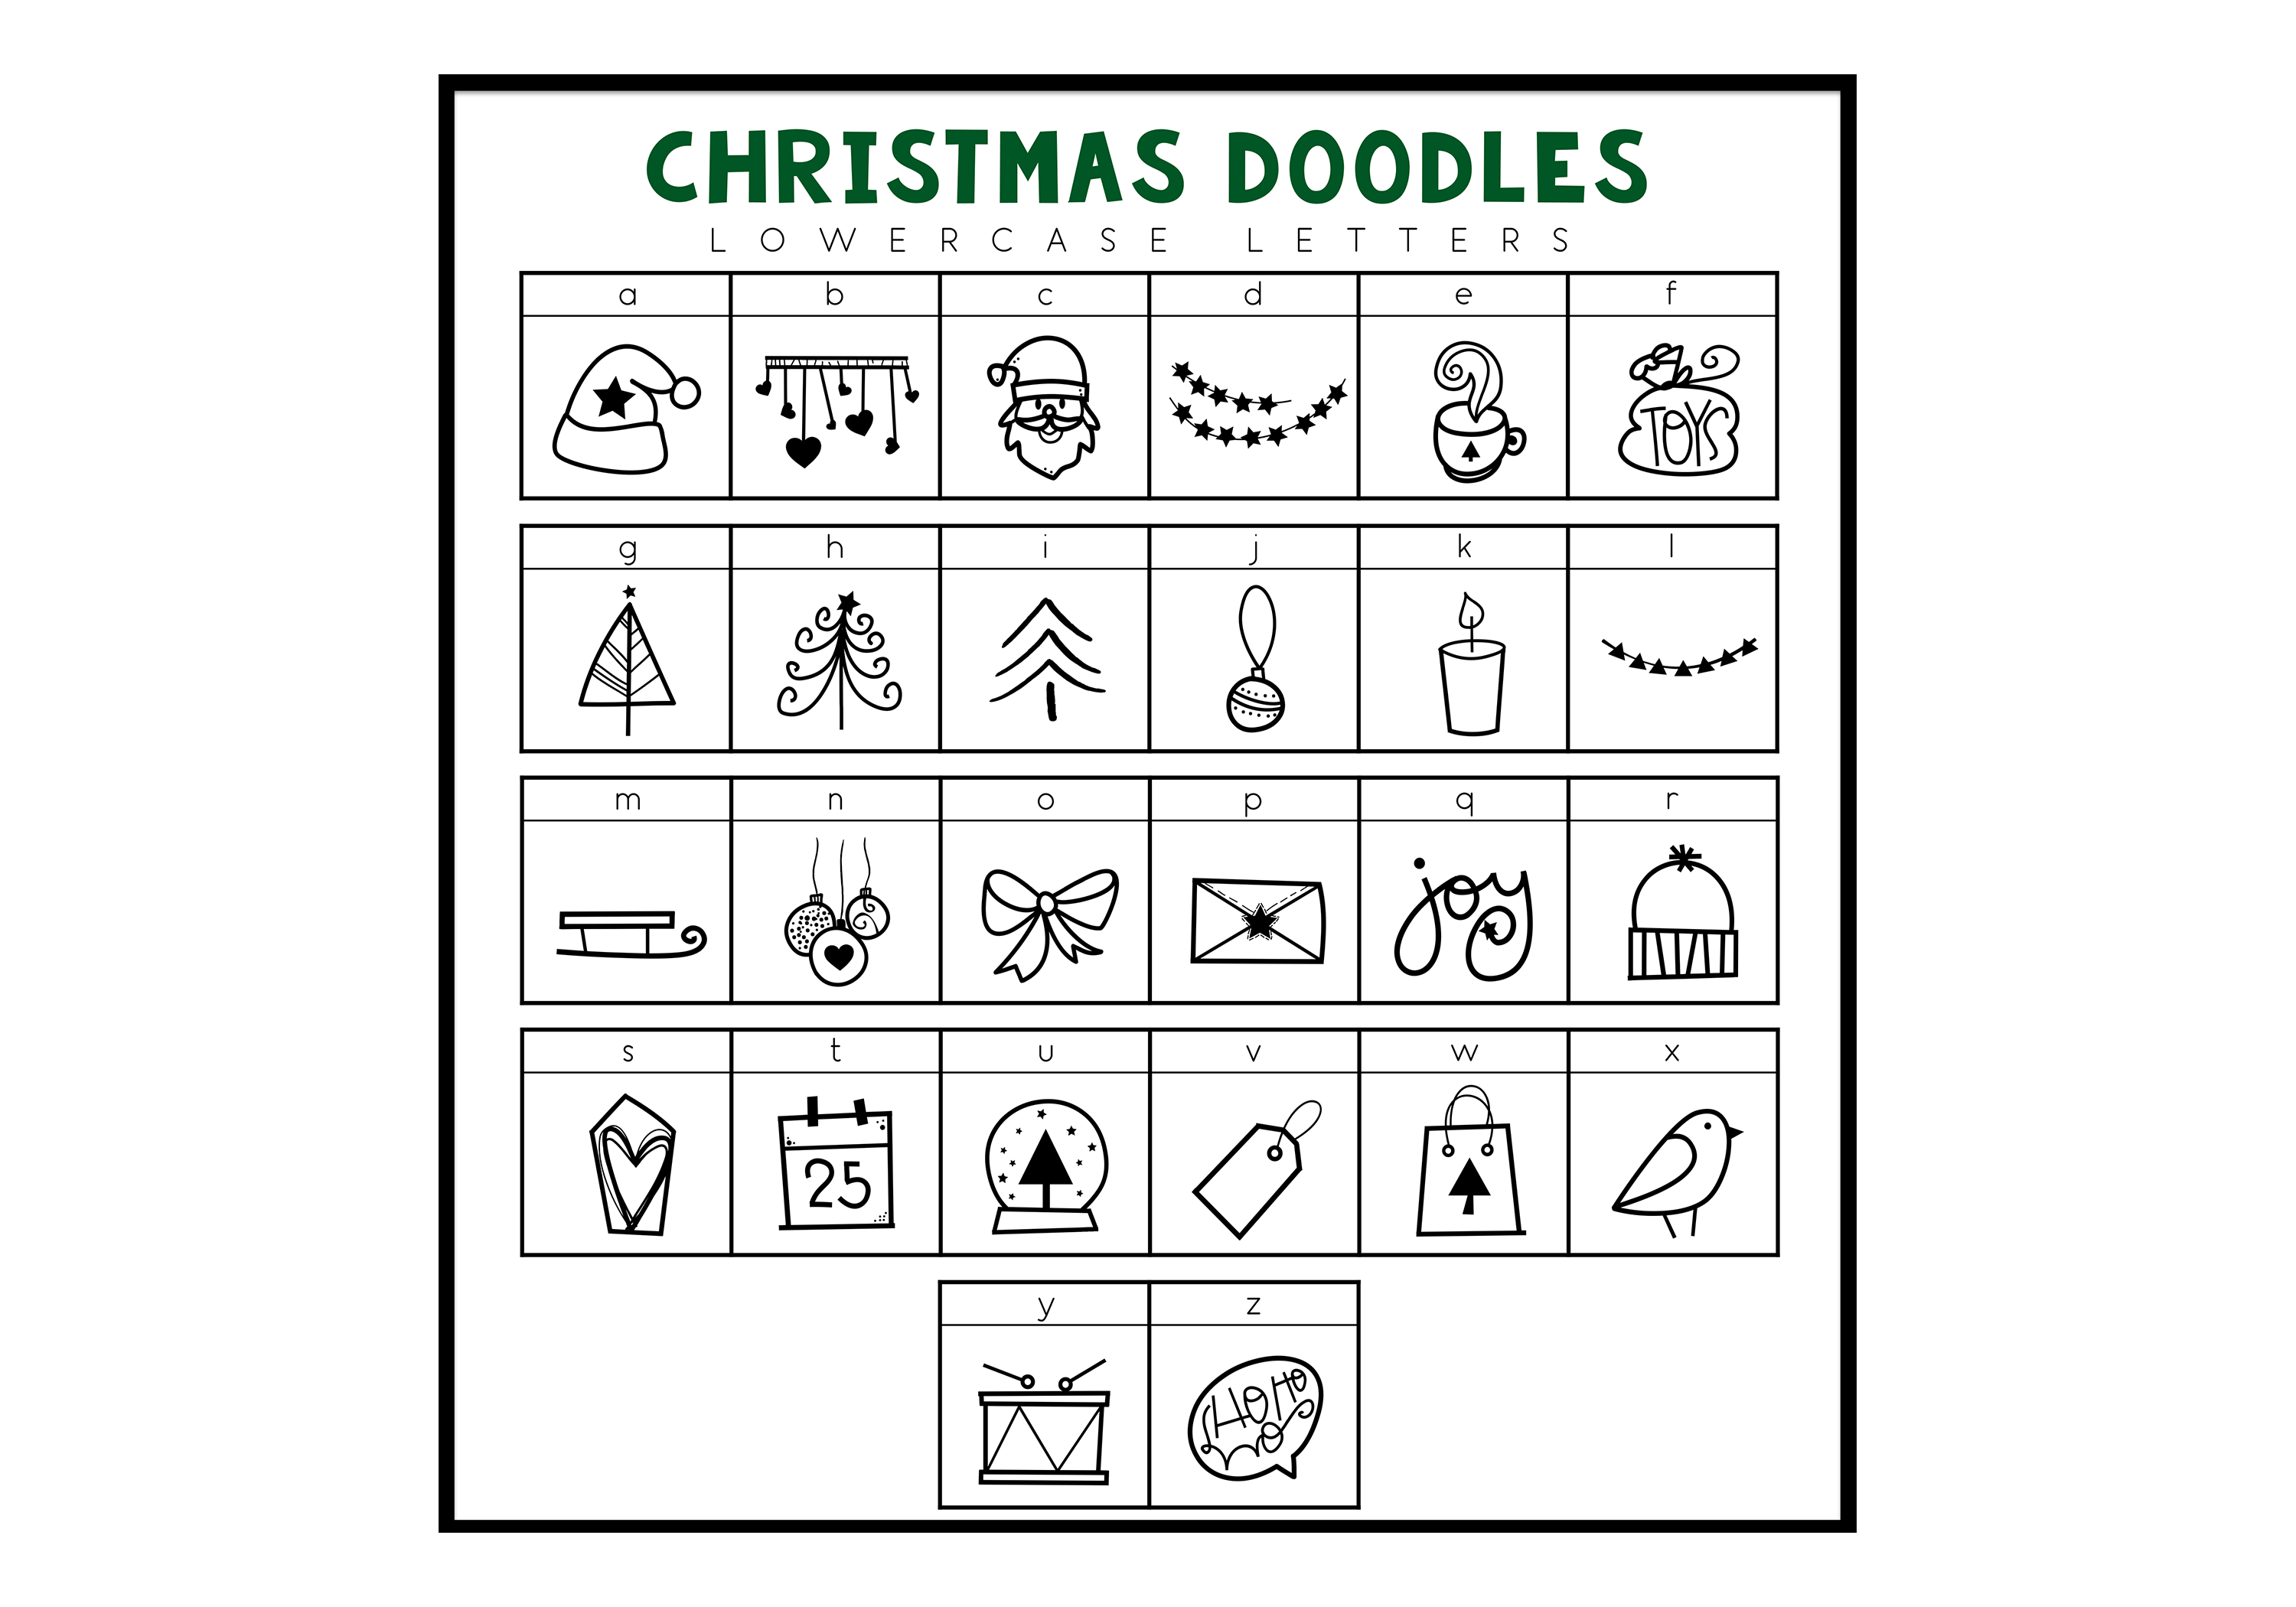 North Pole - A Christmas / Winter Doodles Font example image 3